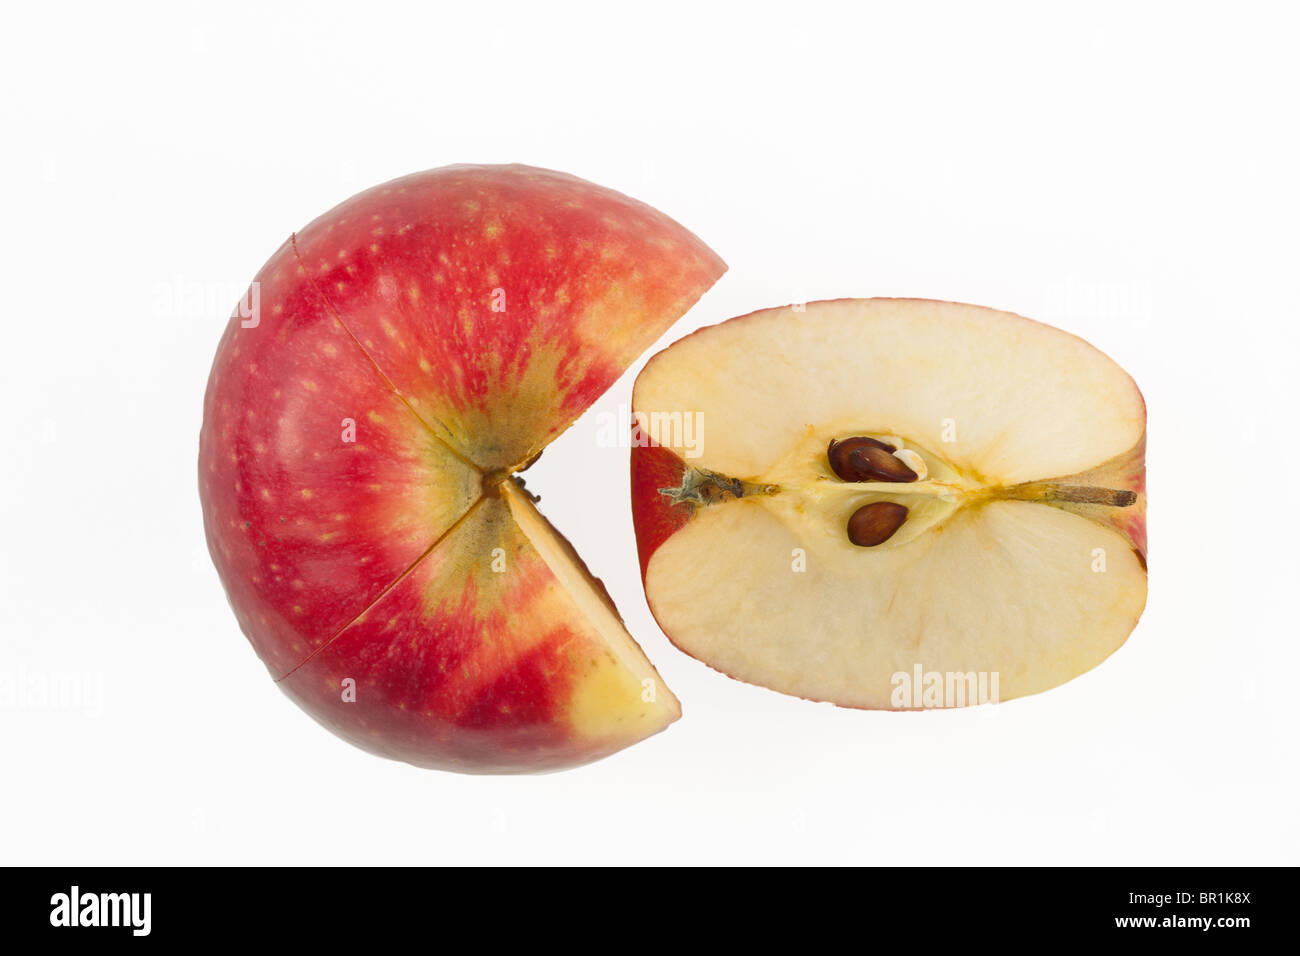 Apple half and round slice on a white background - Stock Image